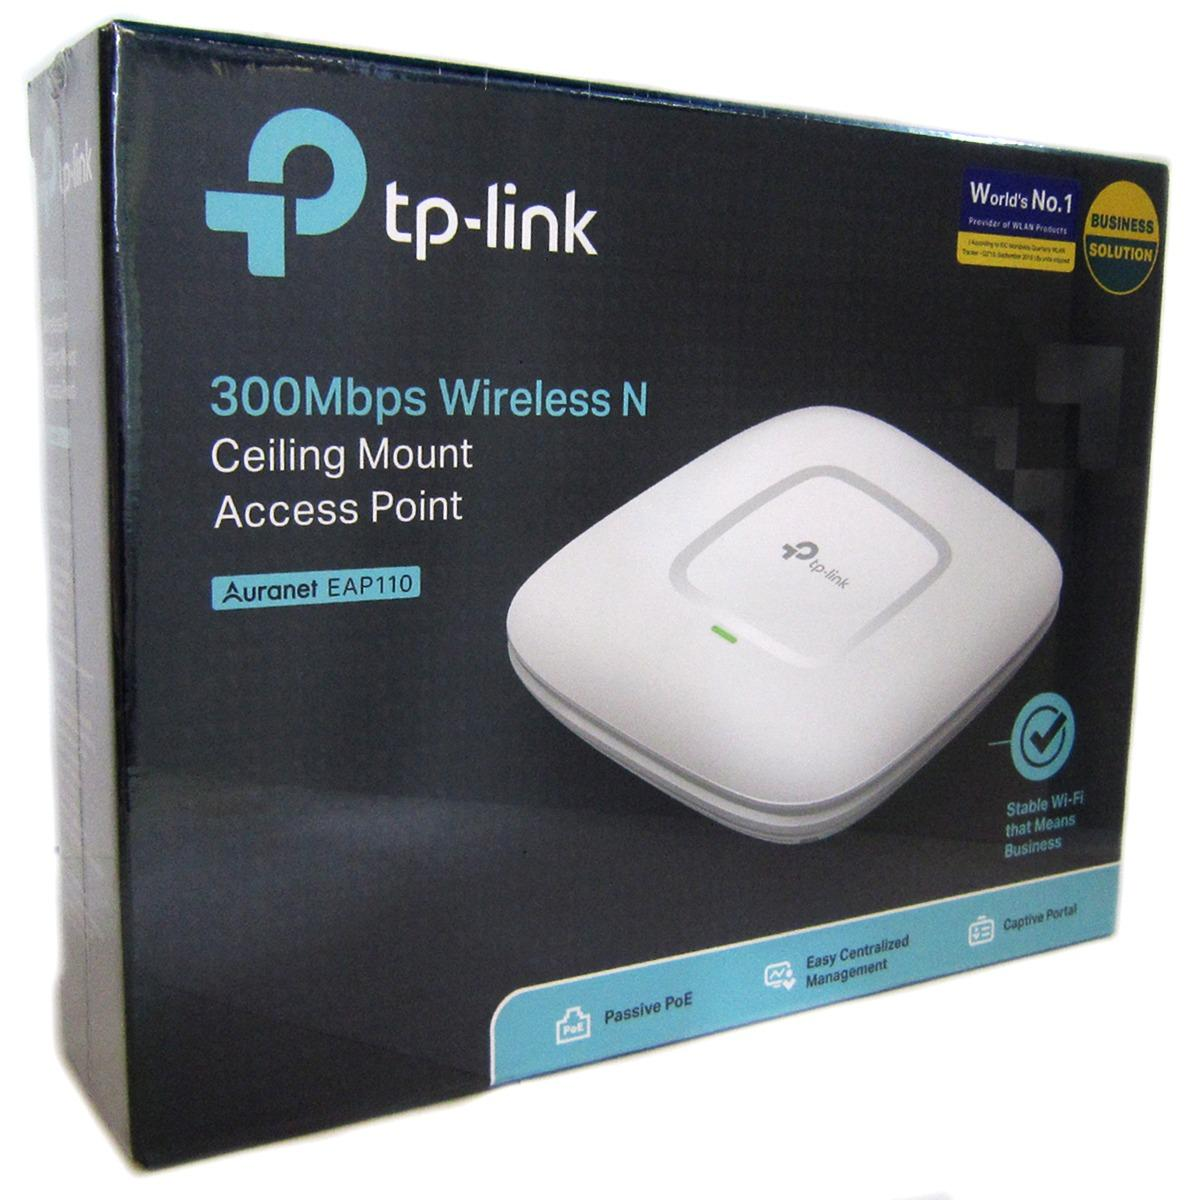 ซื้อ Tp Link Eap110 ส่งKerry 300Mbps Wireless N Ceiling Mount Access Point ออนไลน์ ถูก